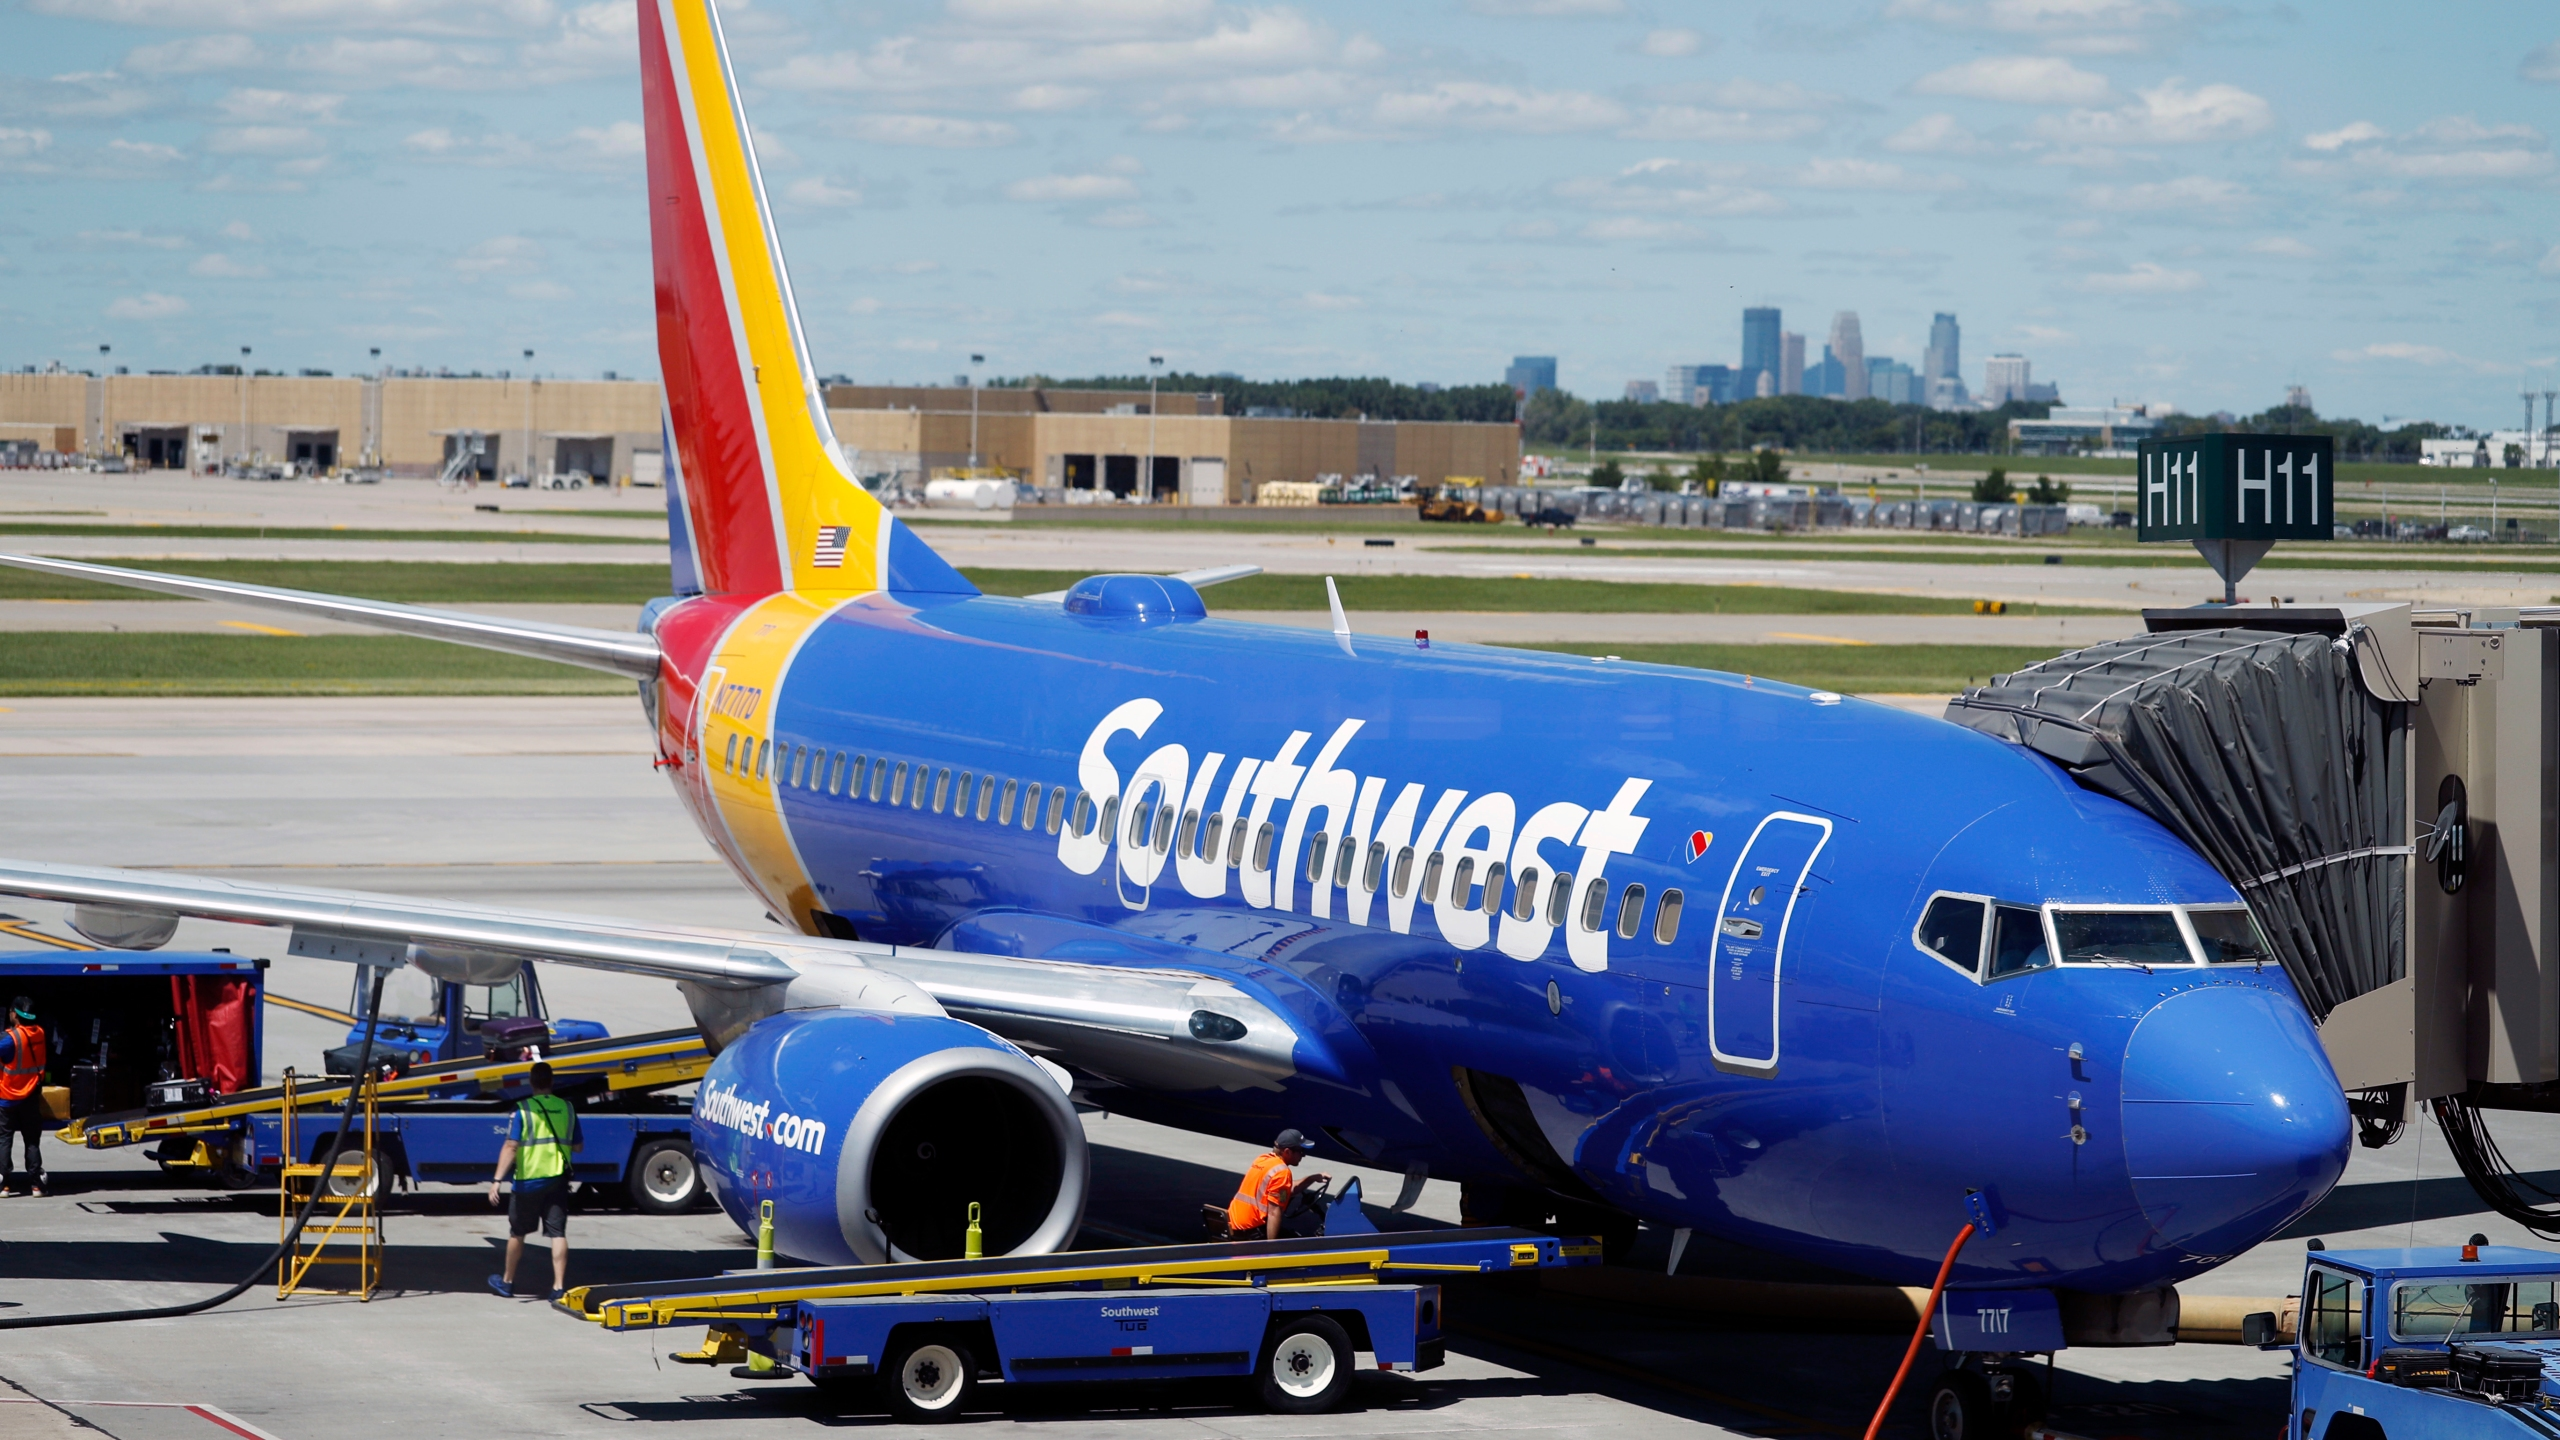 Earns_Southwest_Airlines_42751-159532.jpg68003696